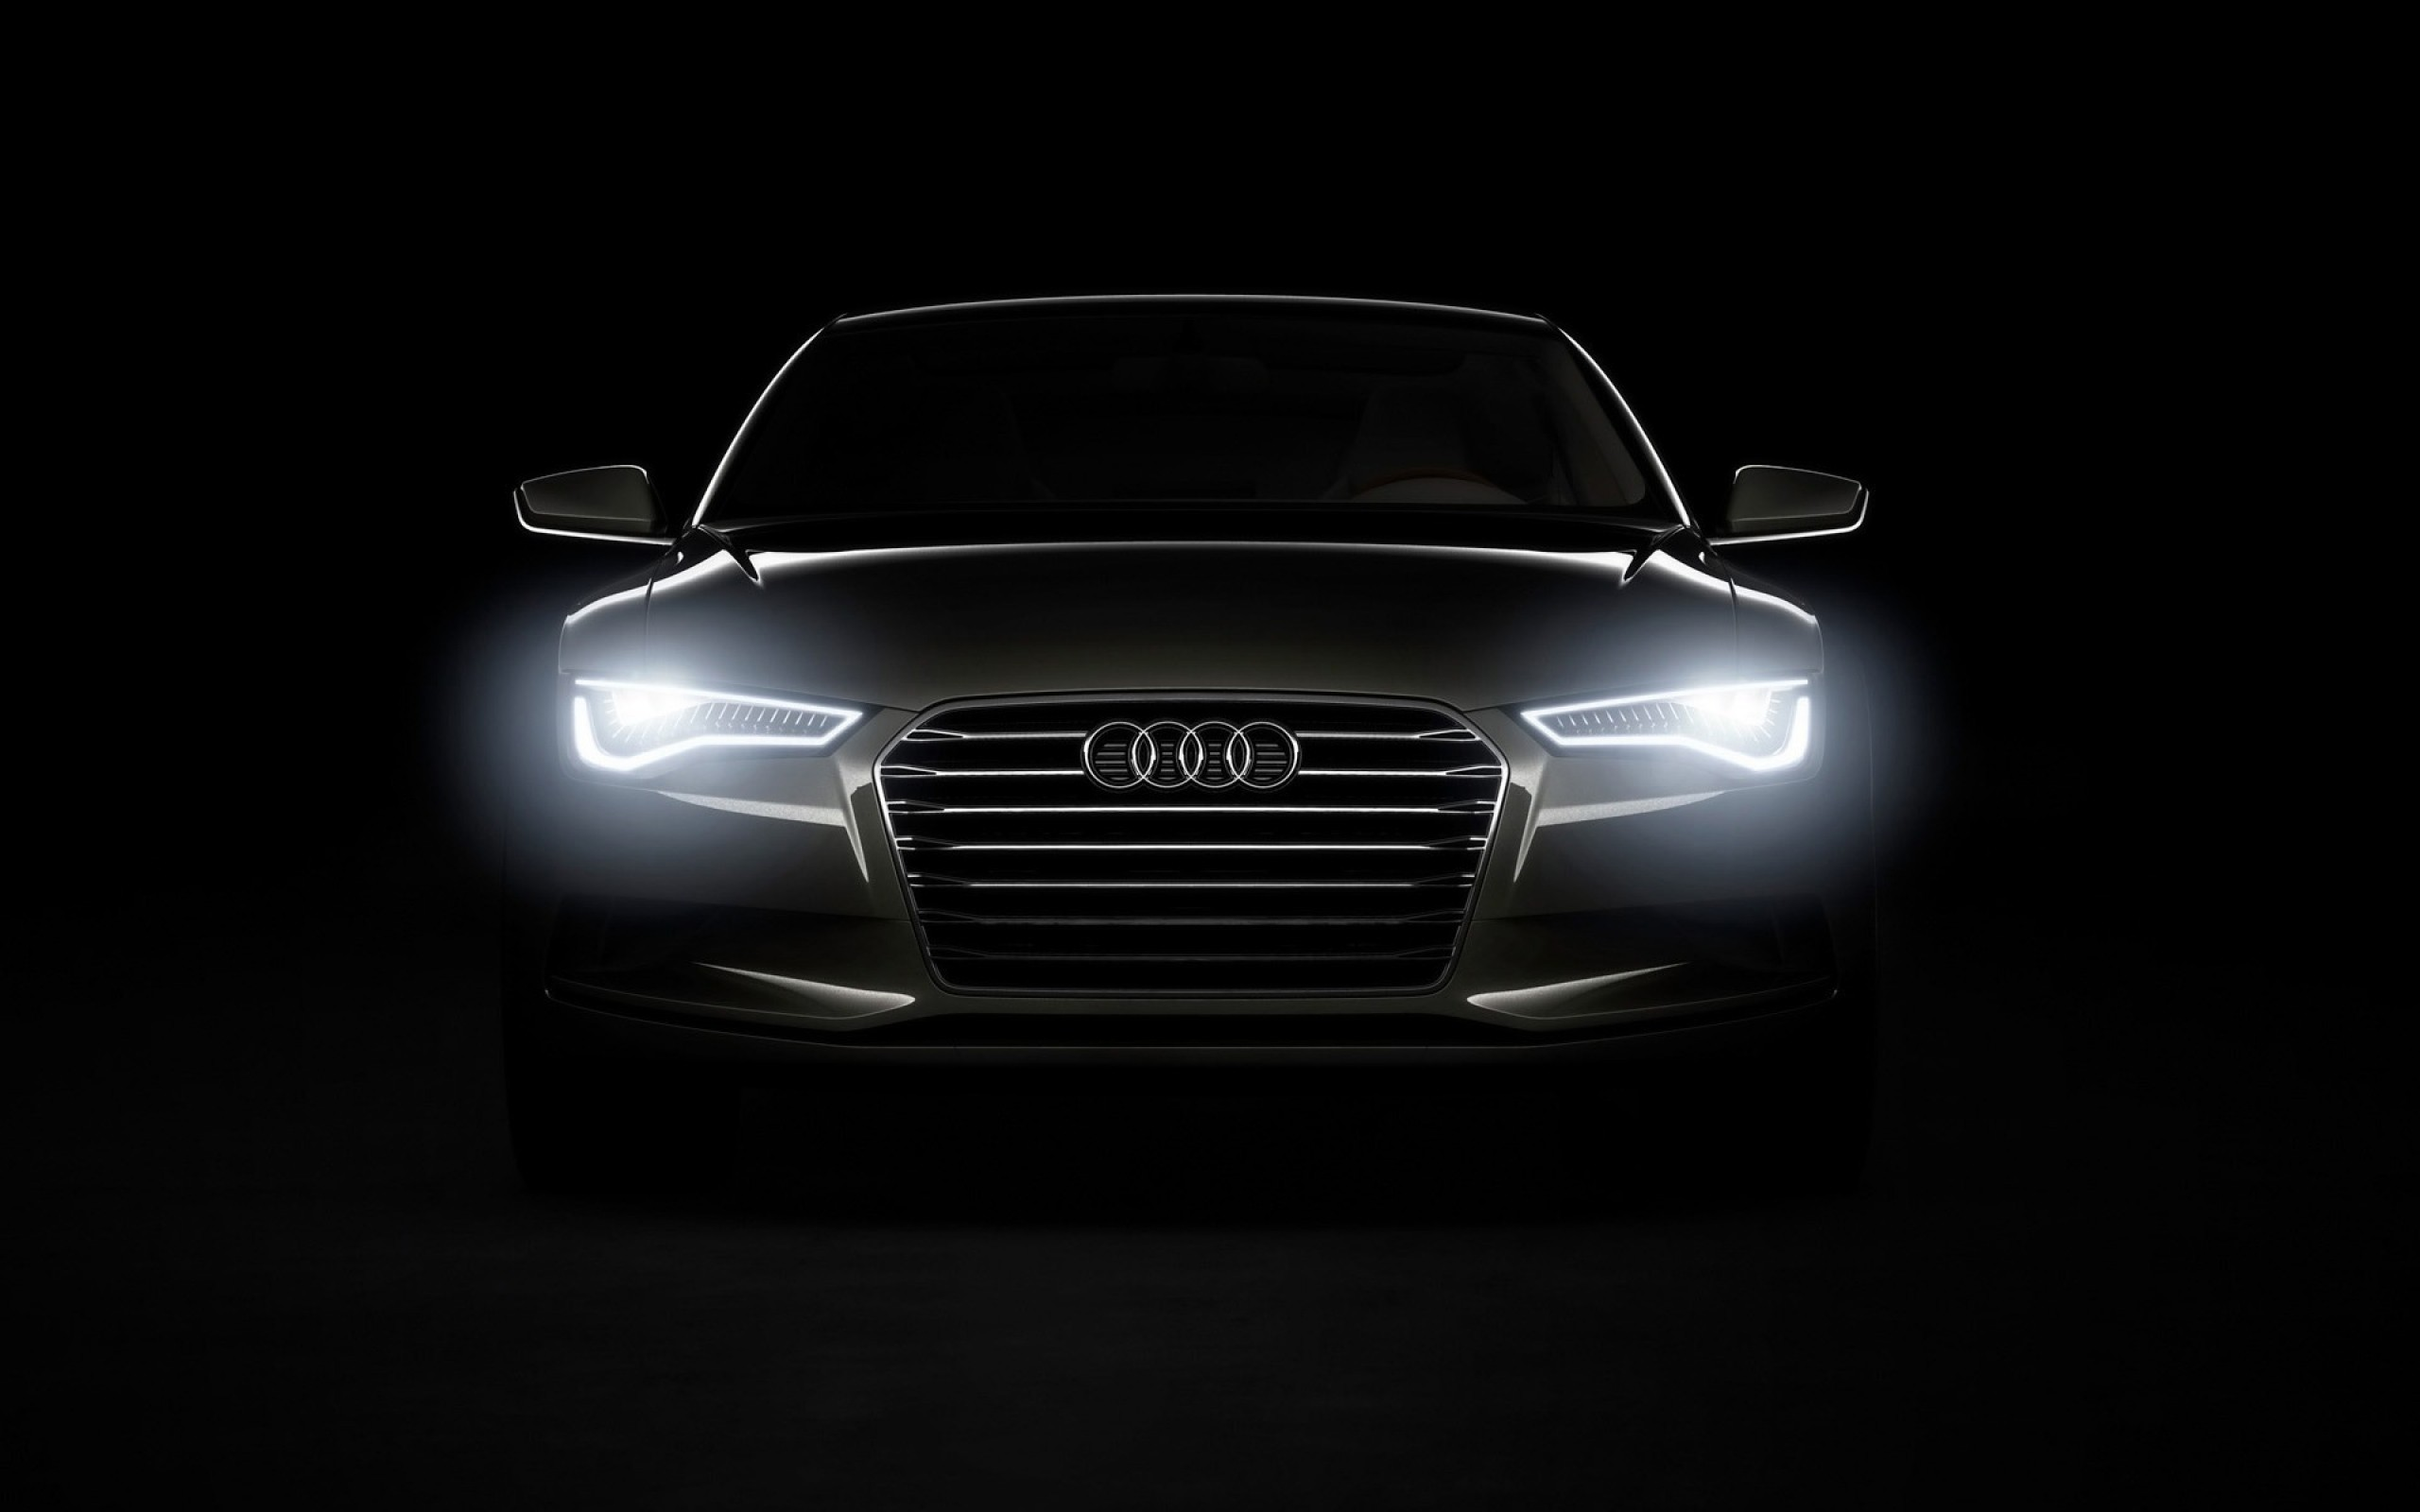 Audi Headlights in the Dark 176.85 Kb